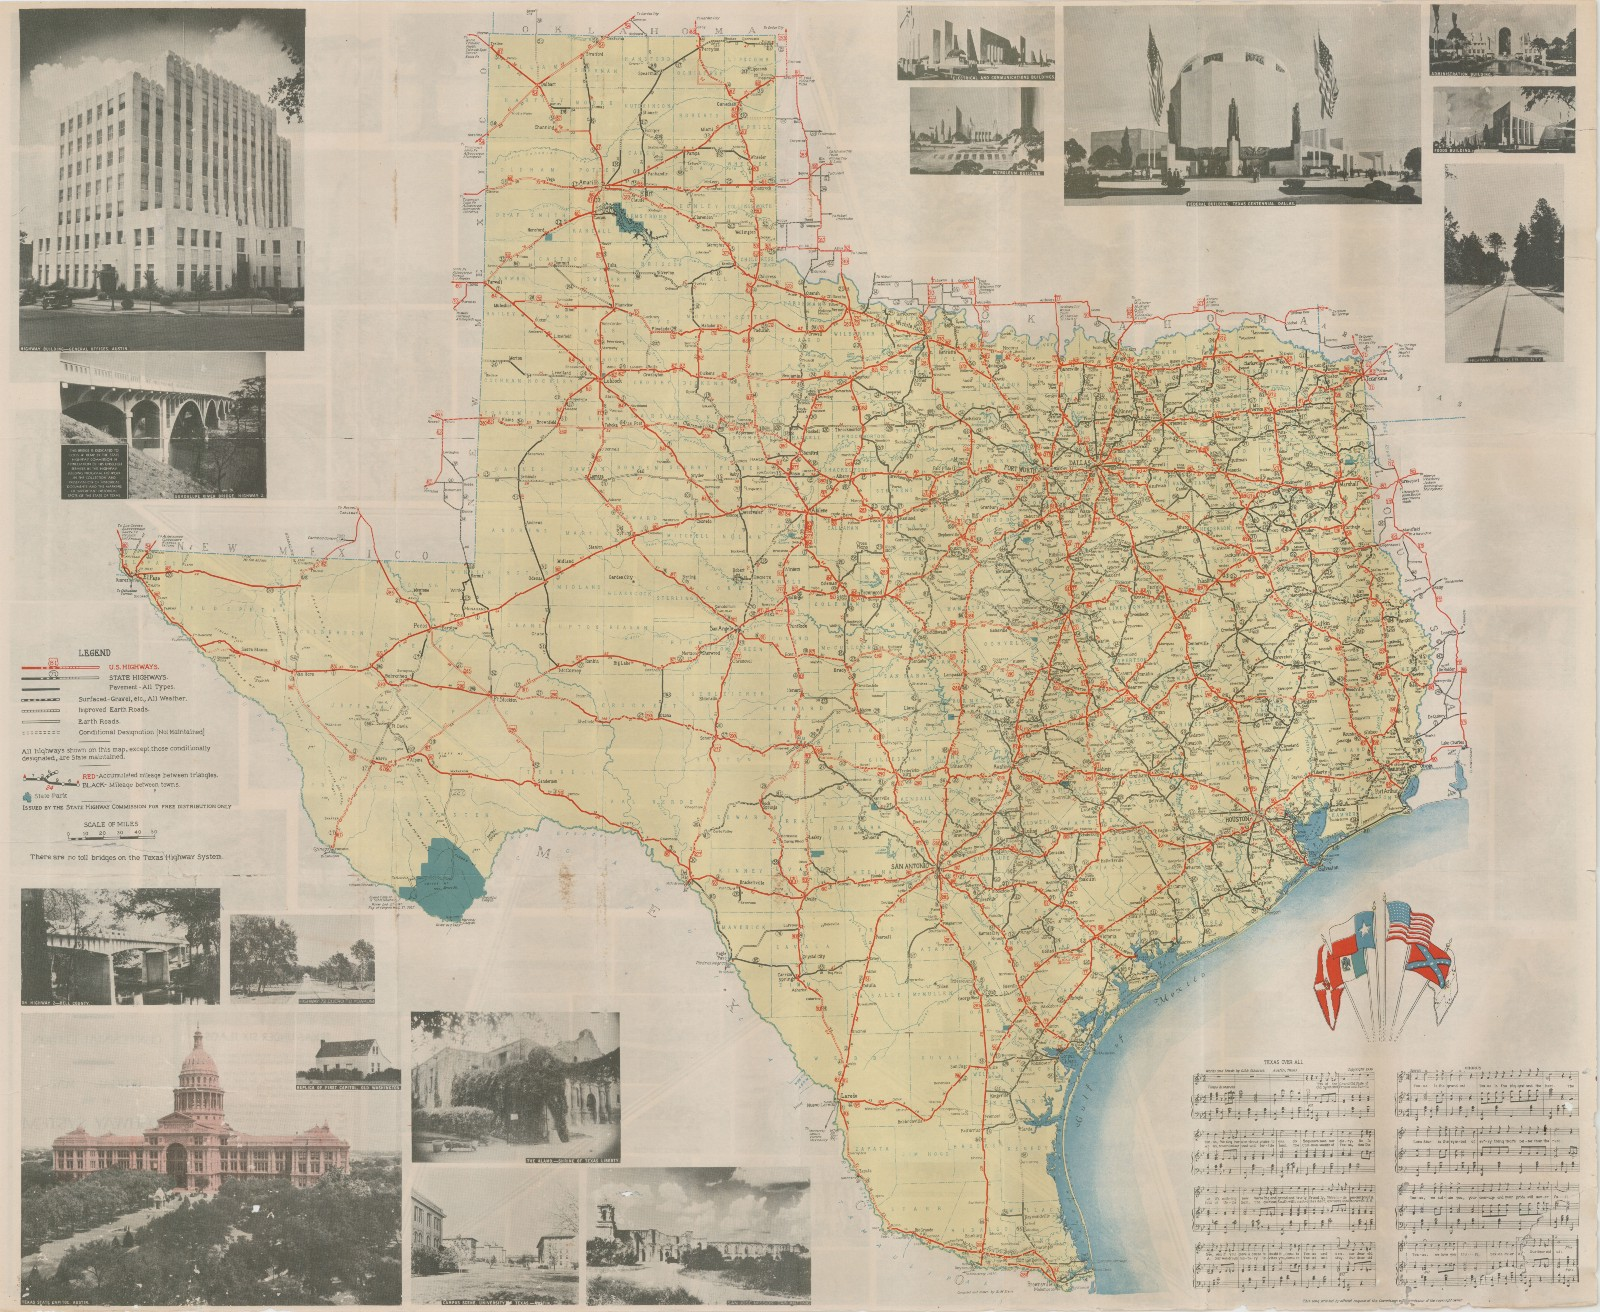 Interstate Map Of Texas.Official Map Of The Highway System Of Texas 1936 Save Texas